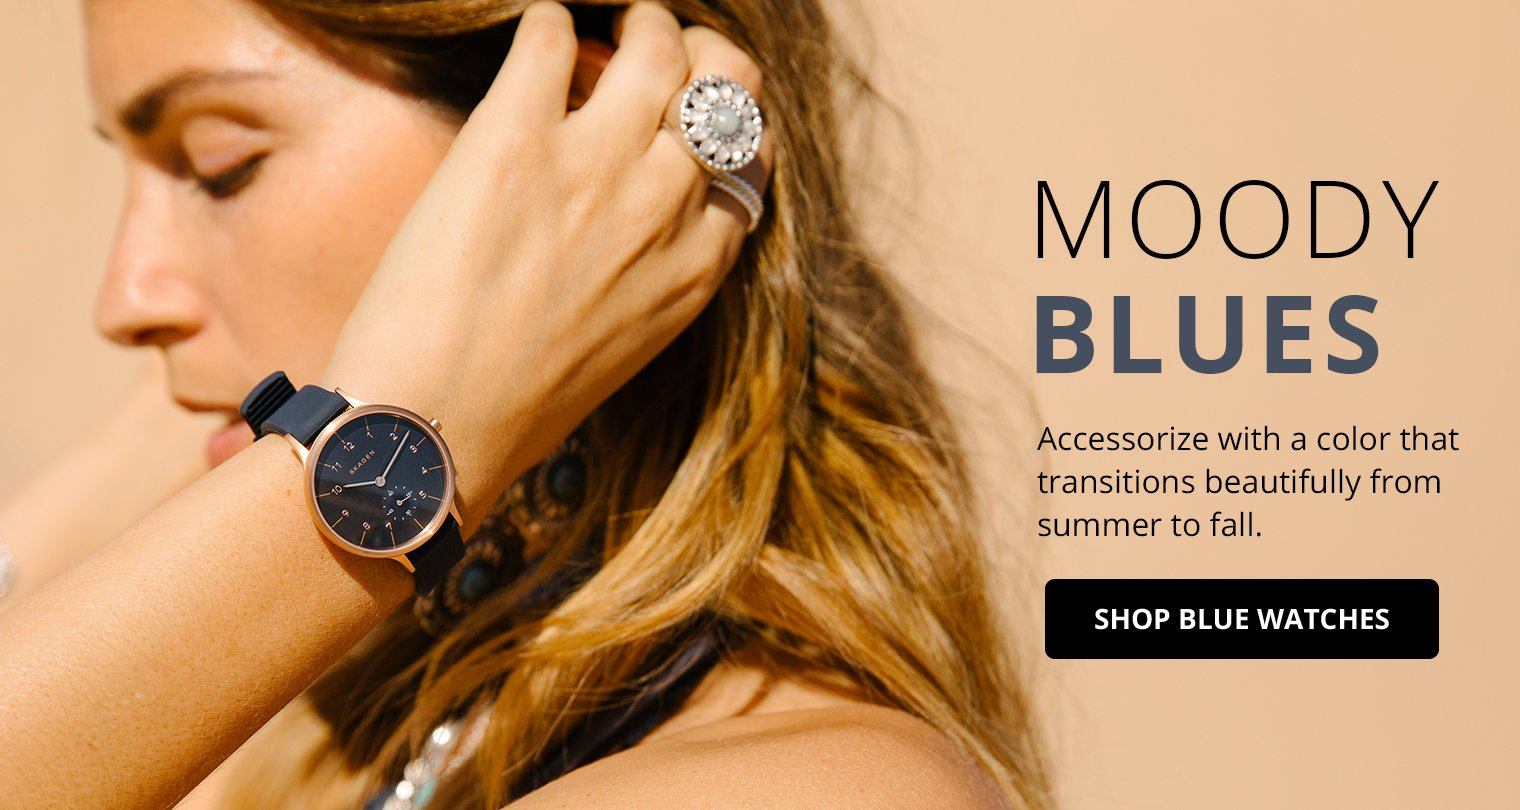 Moody Blues. Accessorize with a color that transitions from summer to fall. Shop Now.